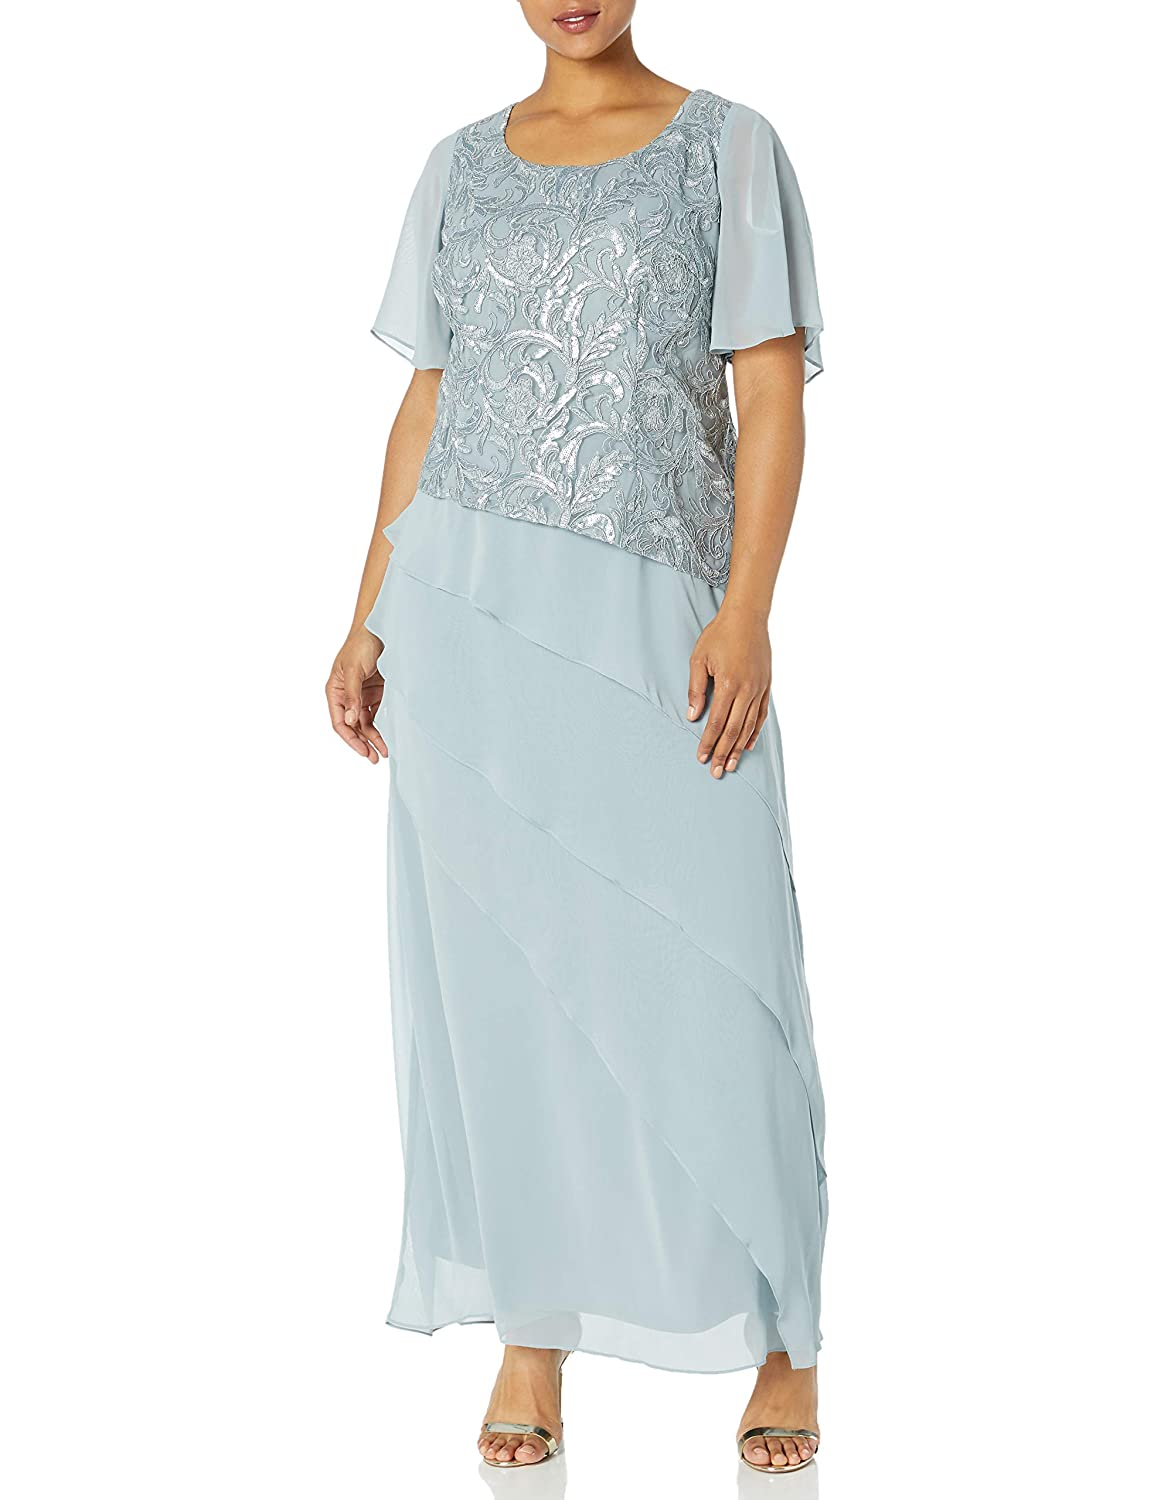 1920s Plus Size Flapper Dresses, Gatsby Dresses, Flapper Costumes Le Bos Womens Plus Size Embroidered Sequin Tiered Long Dress $138.00 AT vintagedancer.com